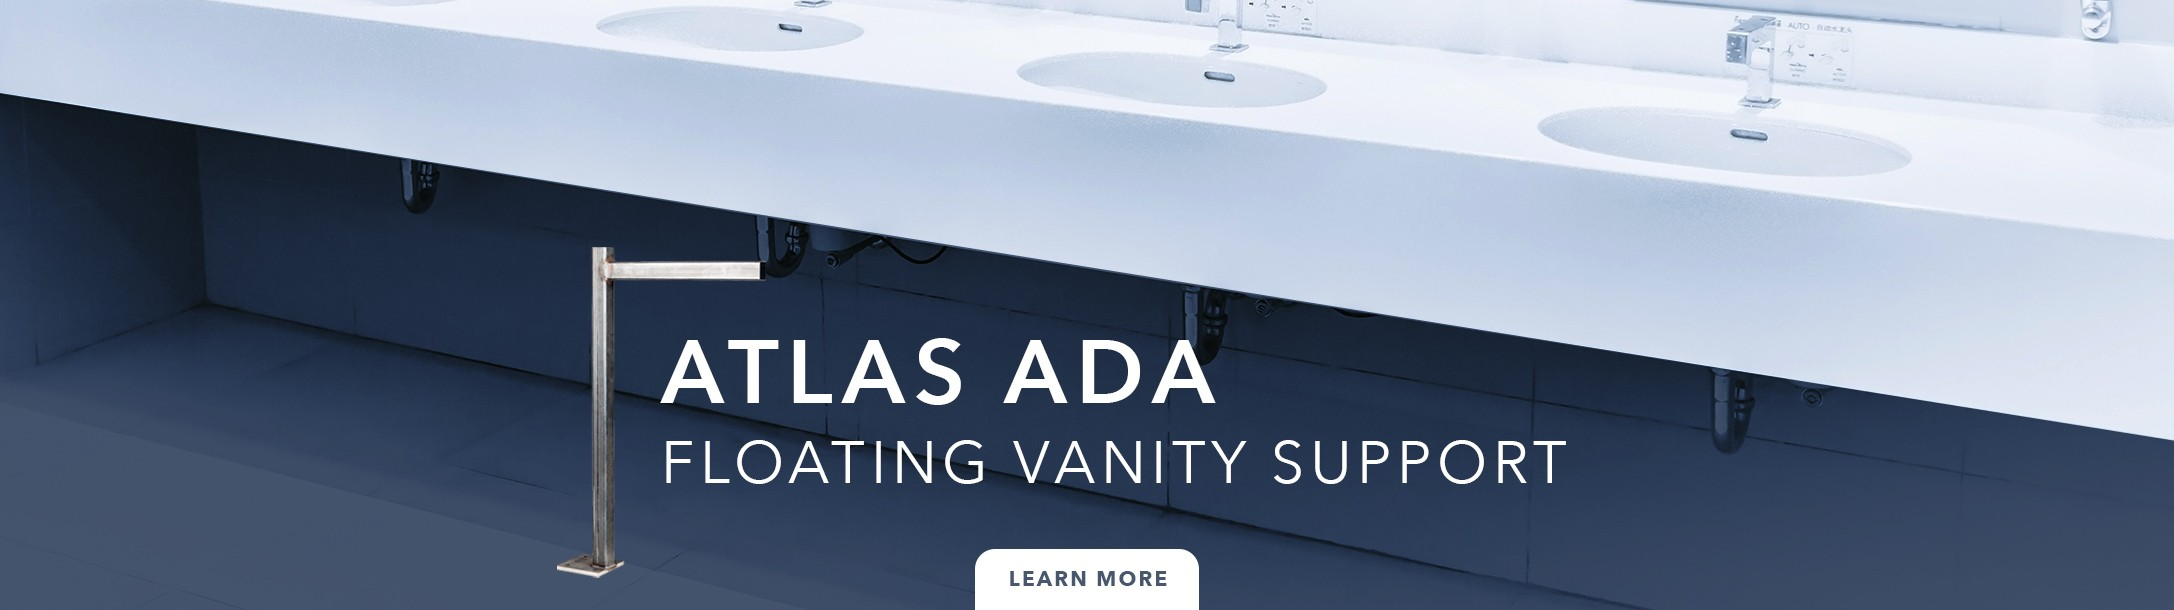 Atlas ADA Floating Vanity Support